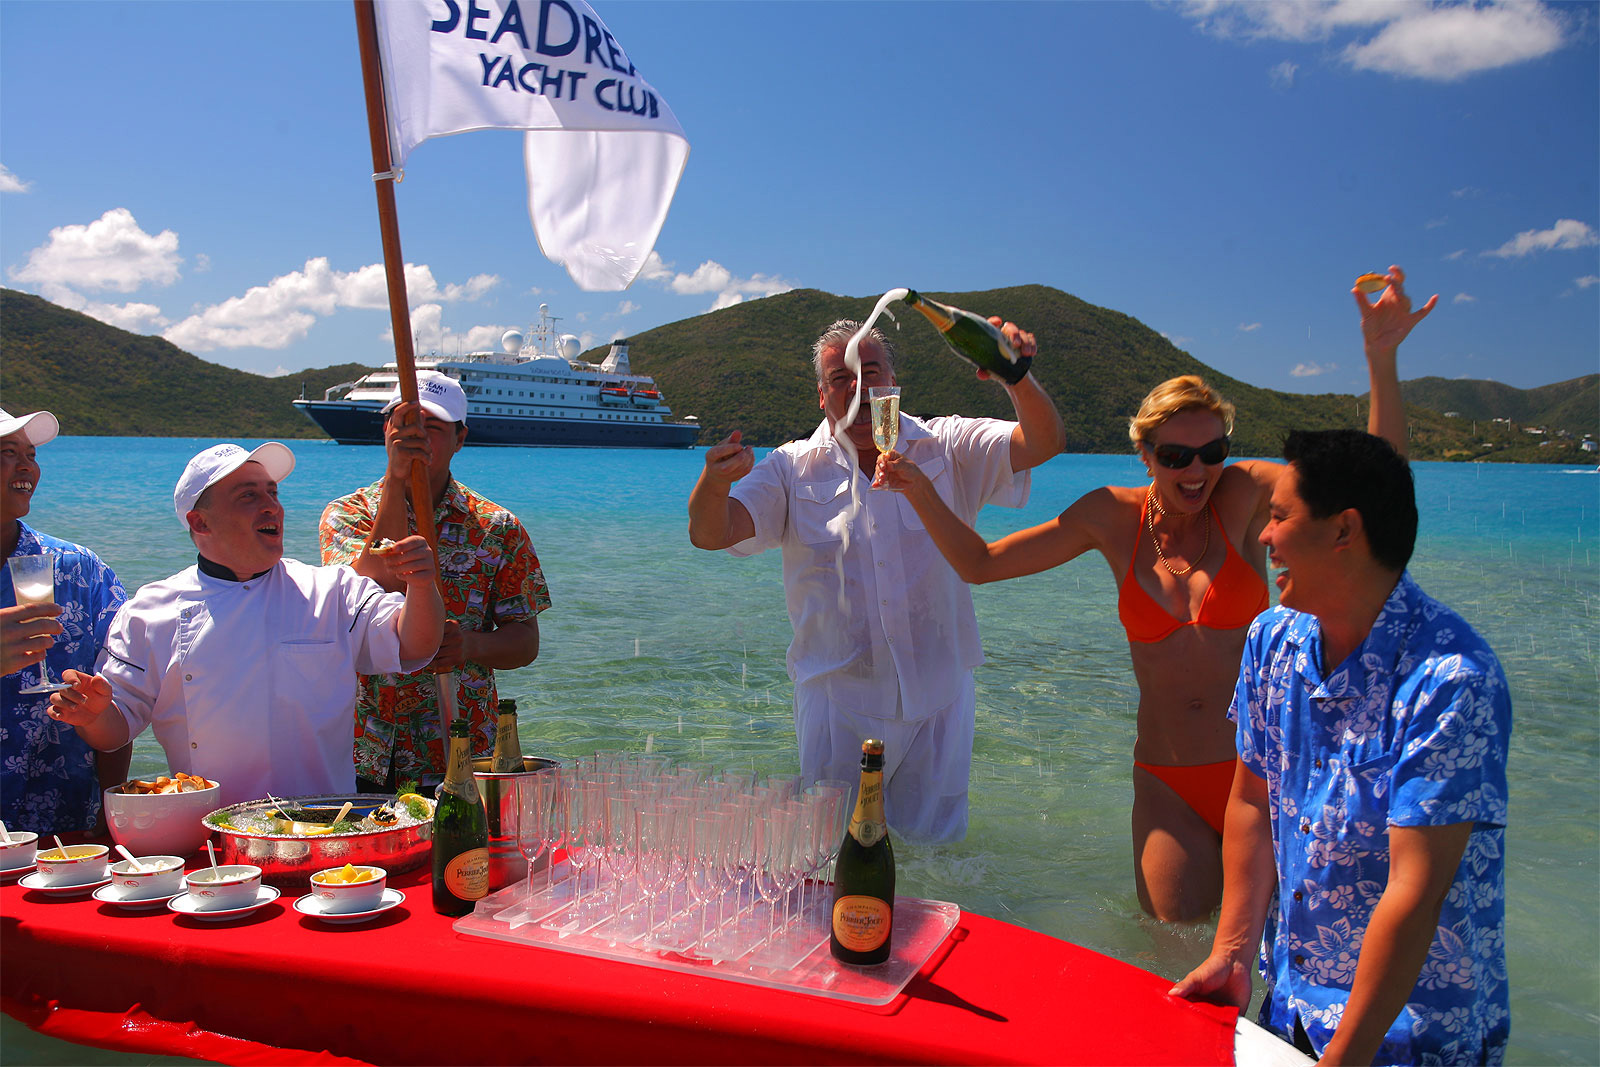 SeaDream Yacht Club – It's Yachting, not Cruising!